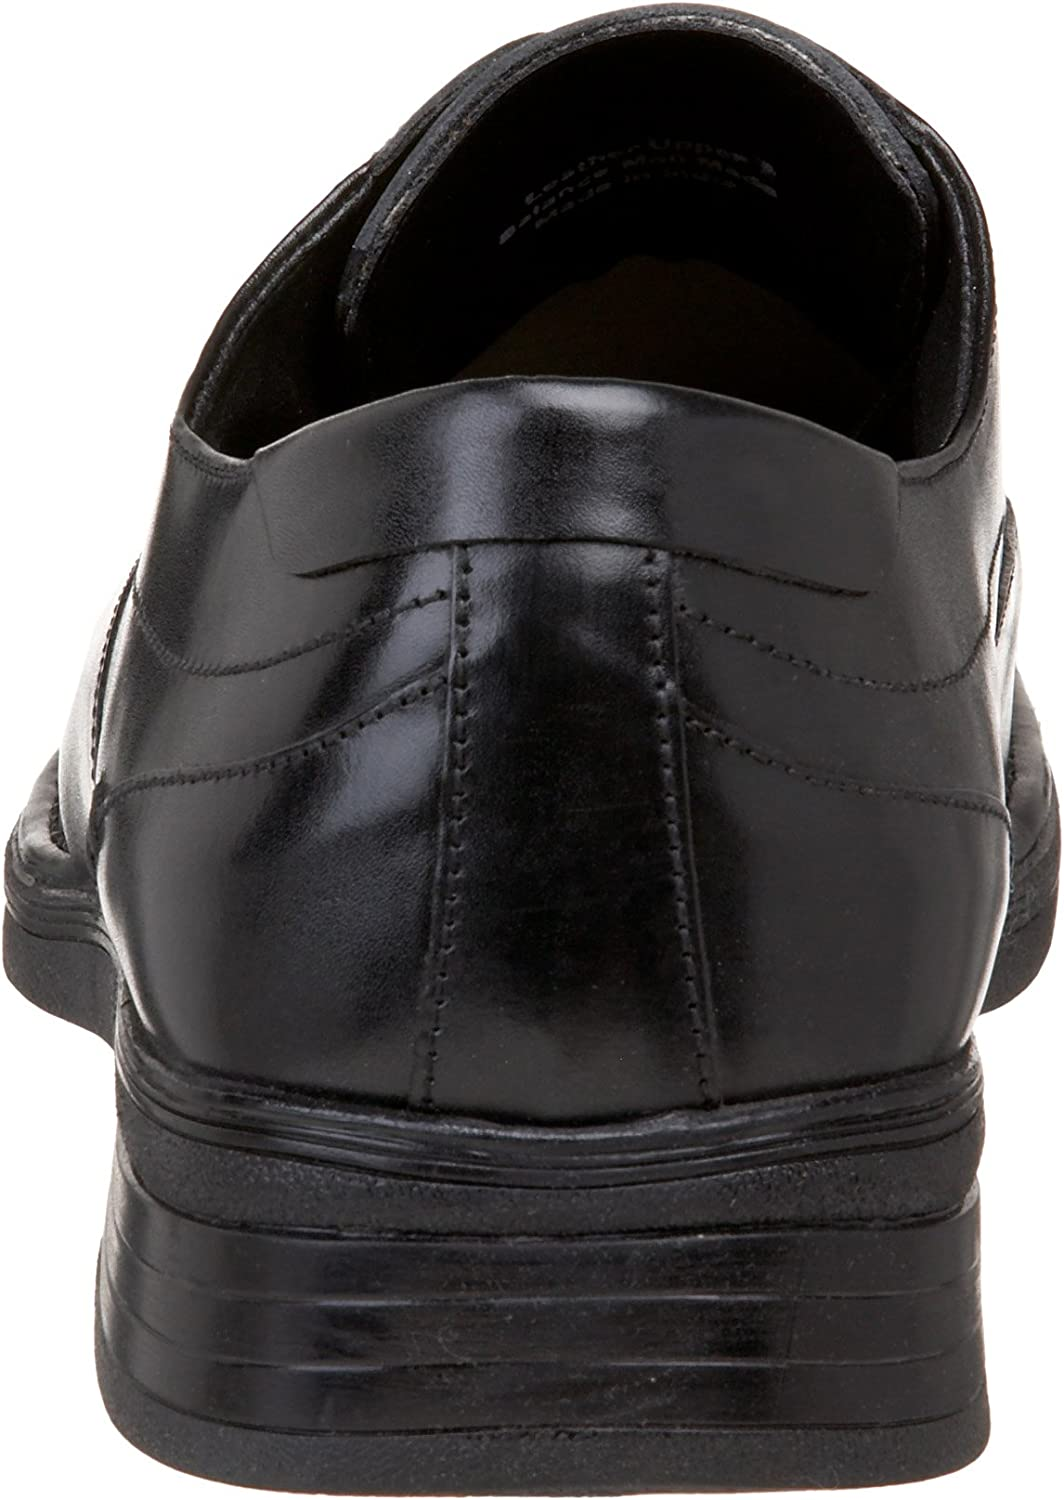 Stacy Adams Men's Ryley Bicycle Toe Oxford